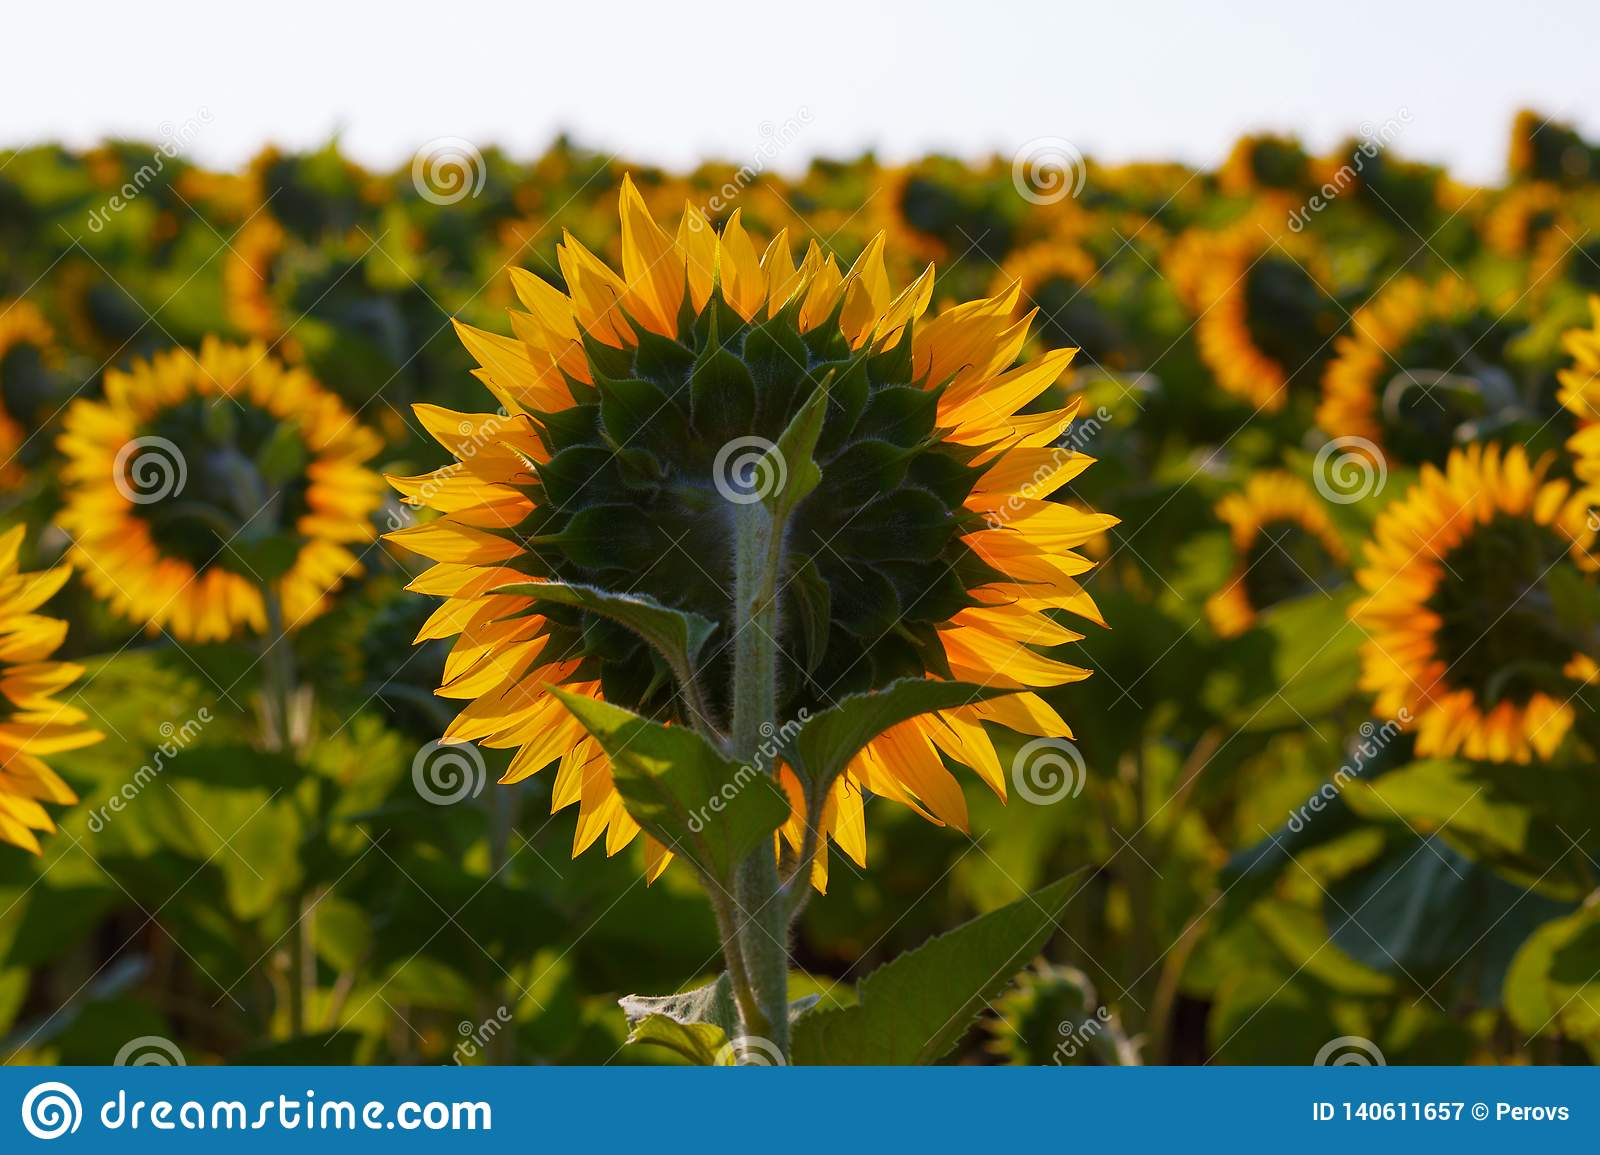 The blossoming sunflower close up against the sun